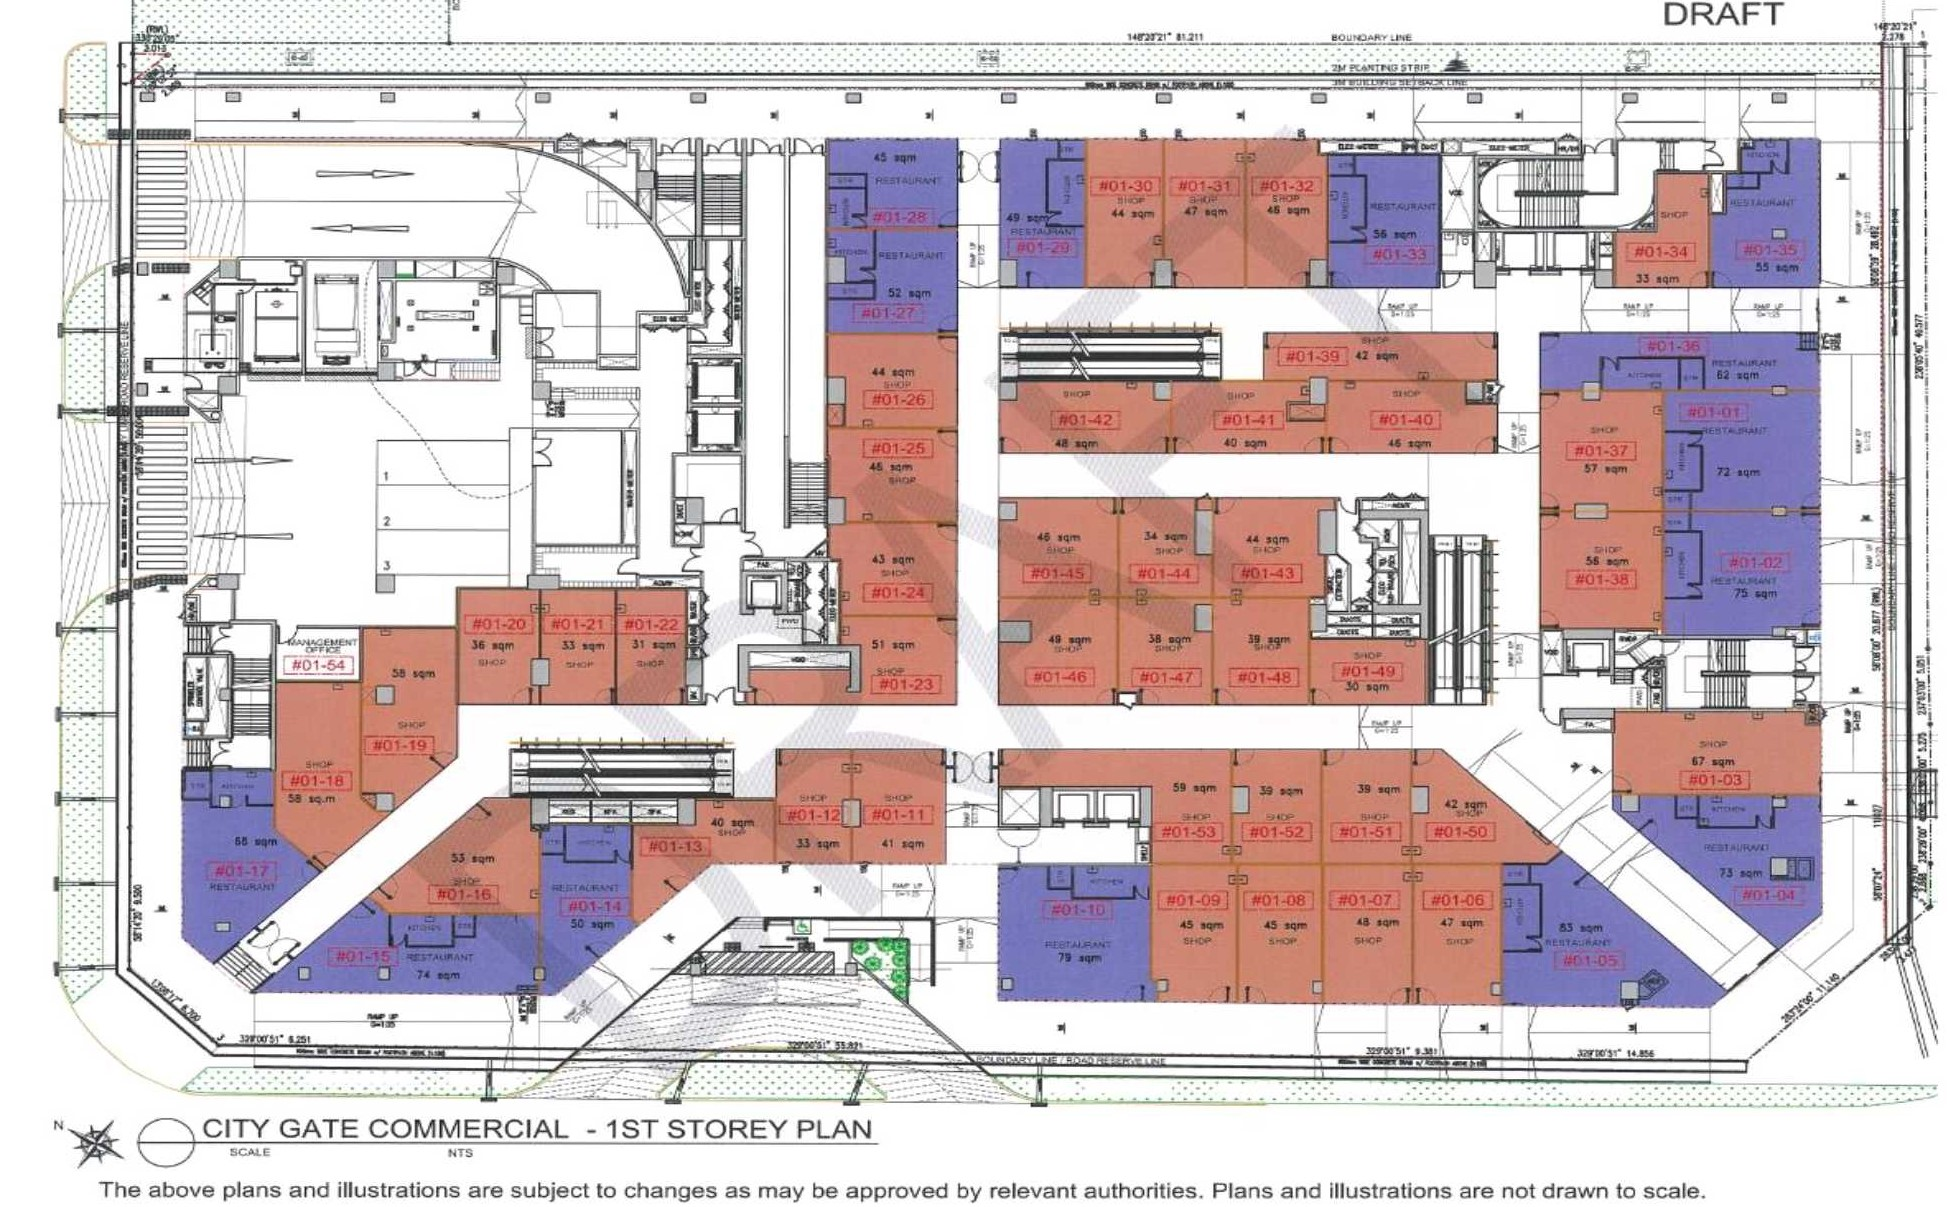 City Gate Commercial Site Plan 2